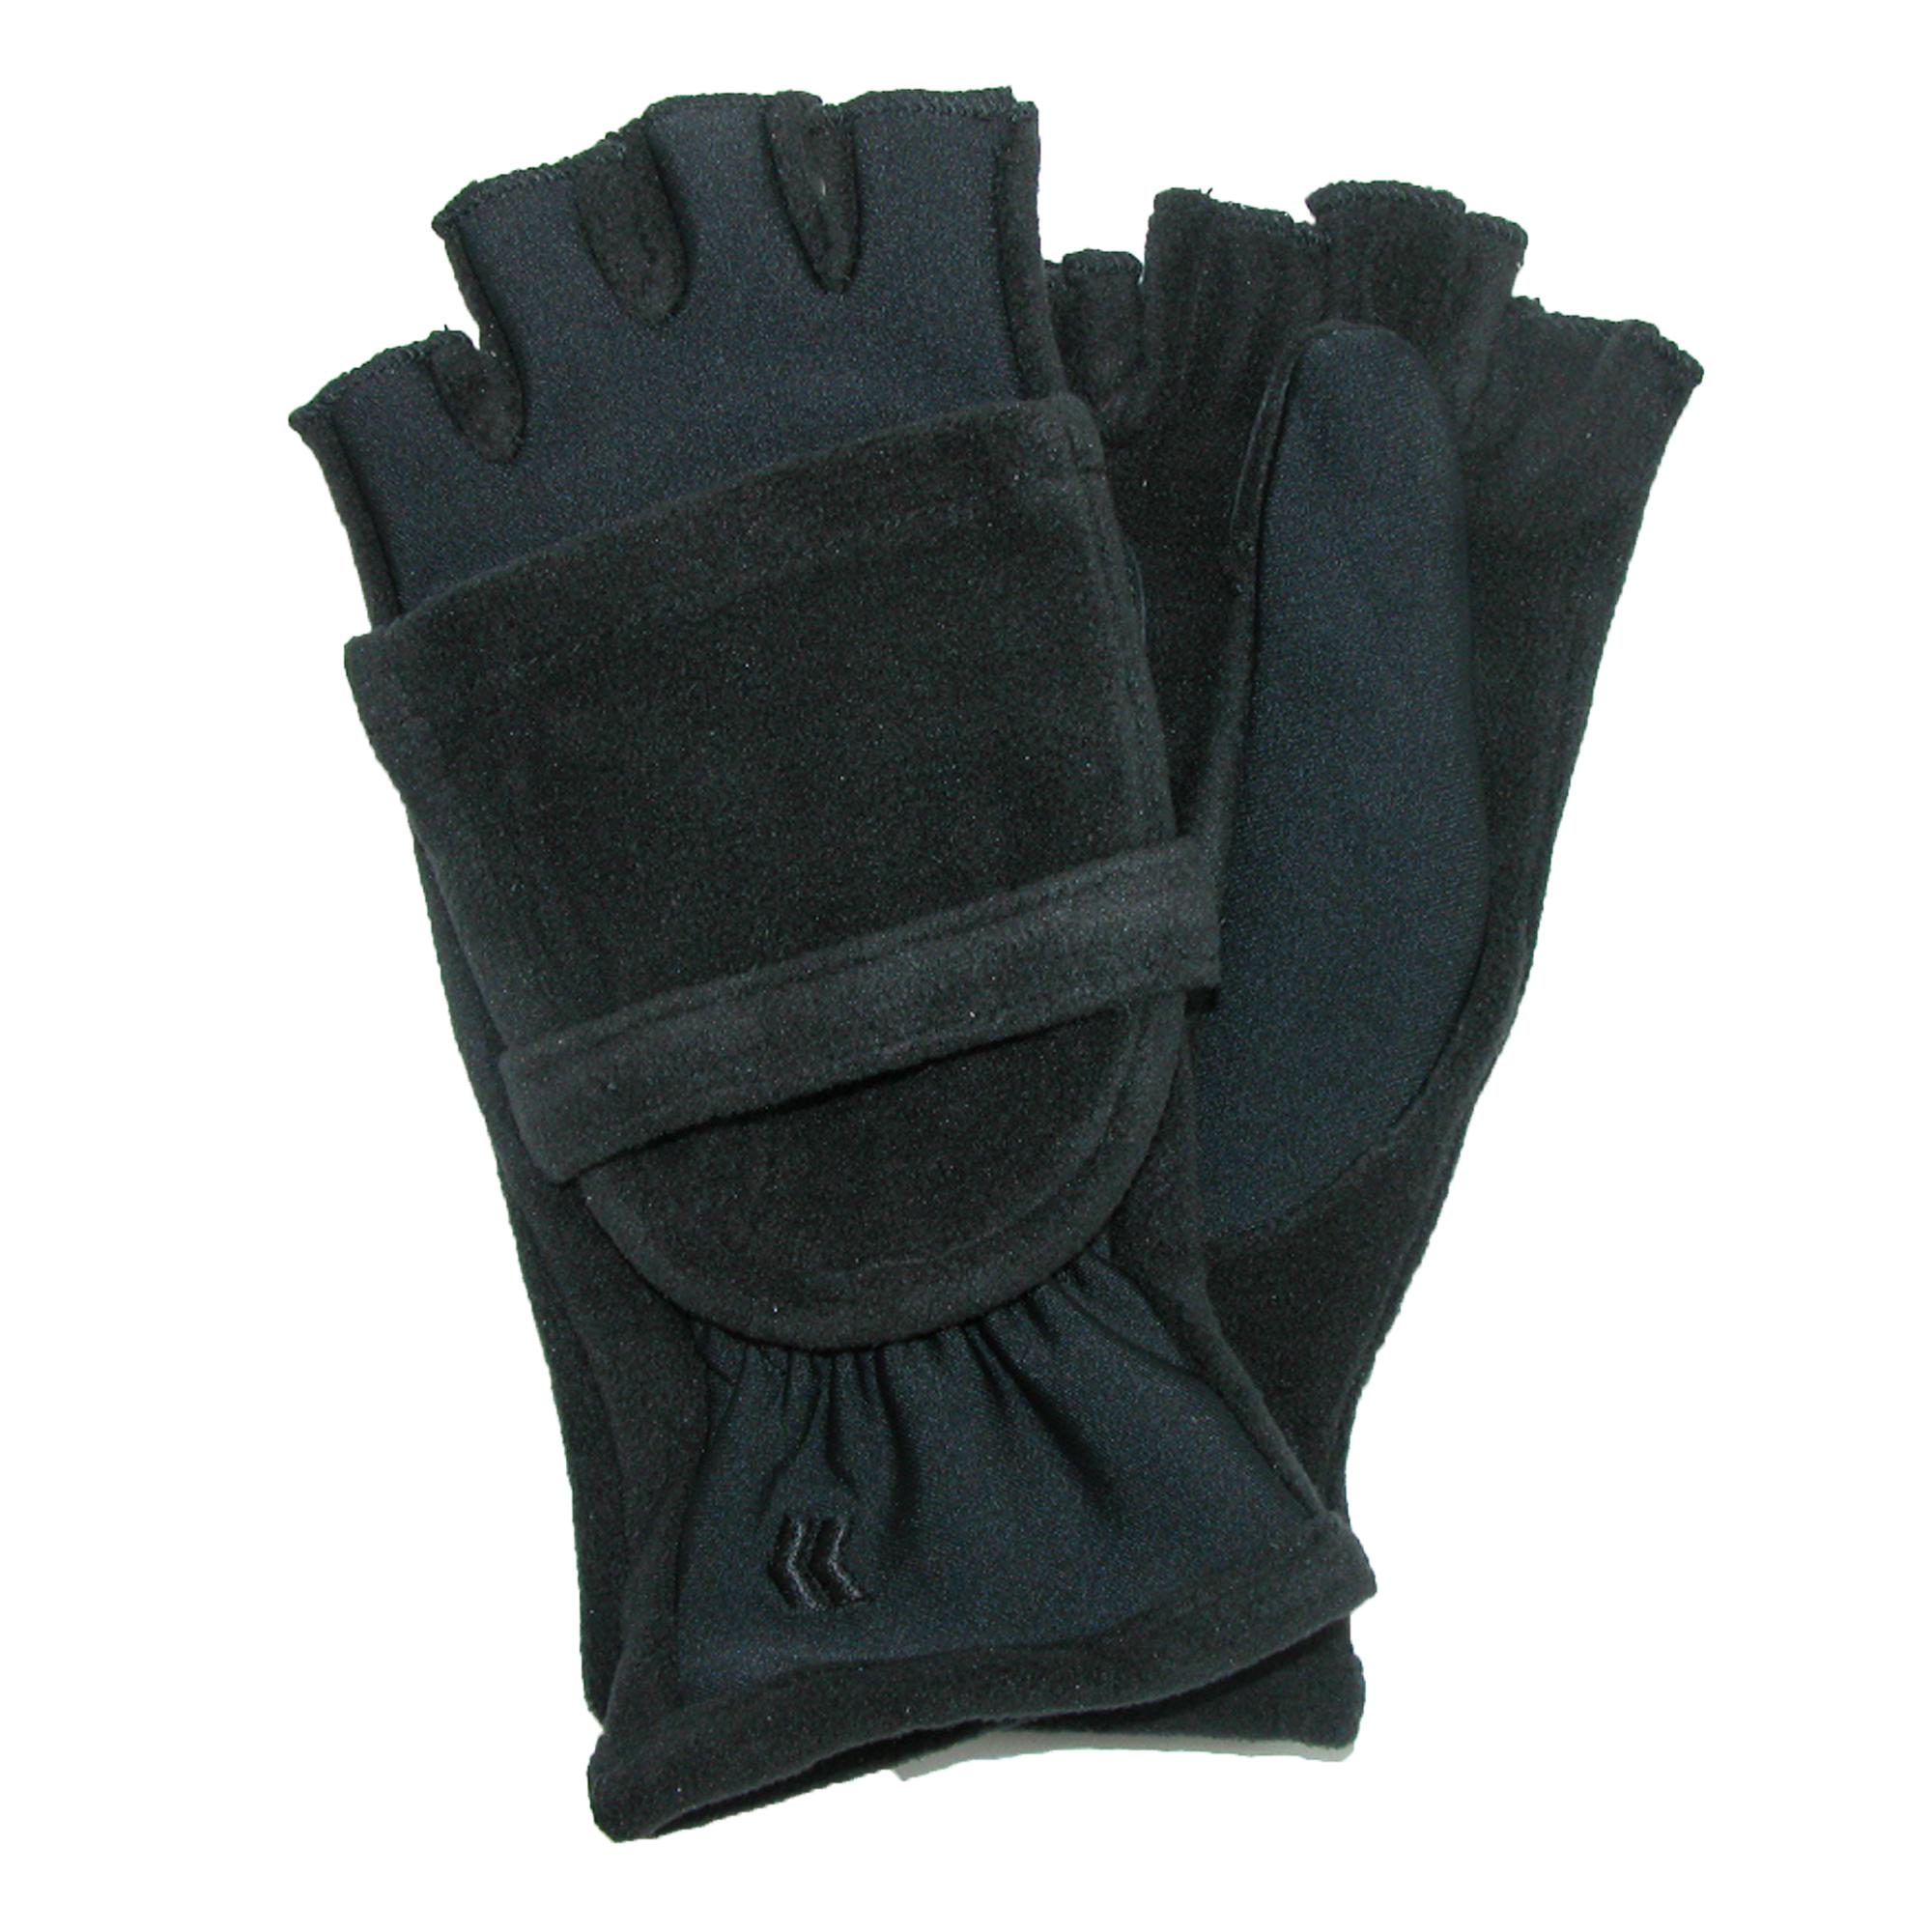 Isotoner Womens Fleece Stretch Convertible Gloves With Thumb Hole